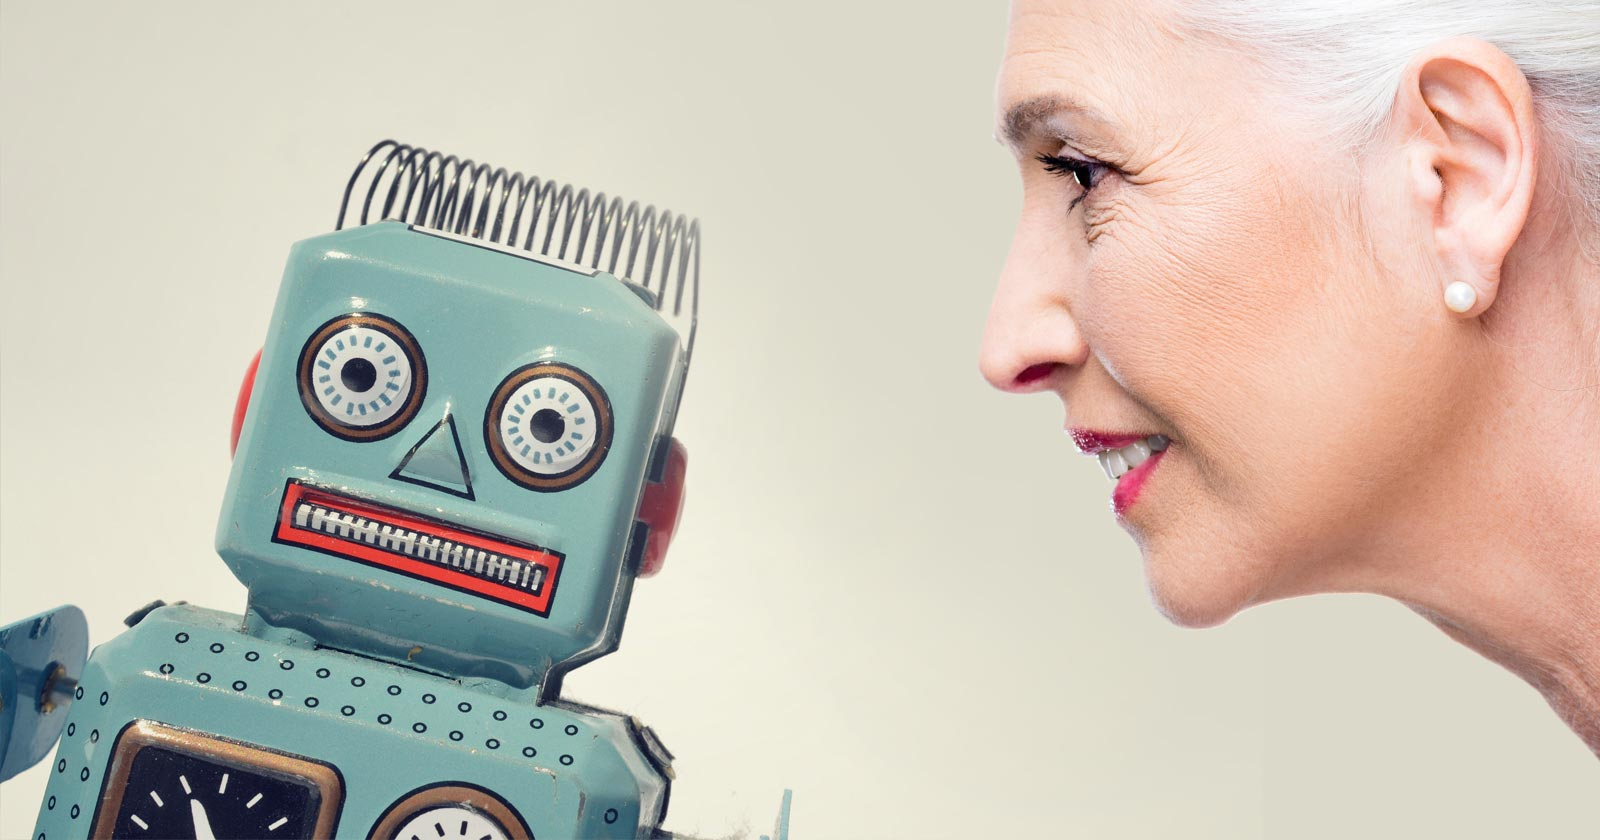 robotic-devices-for-seniors-Article-Image-1600x840